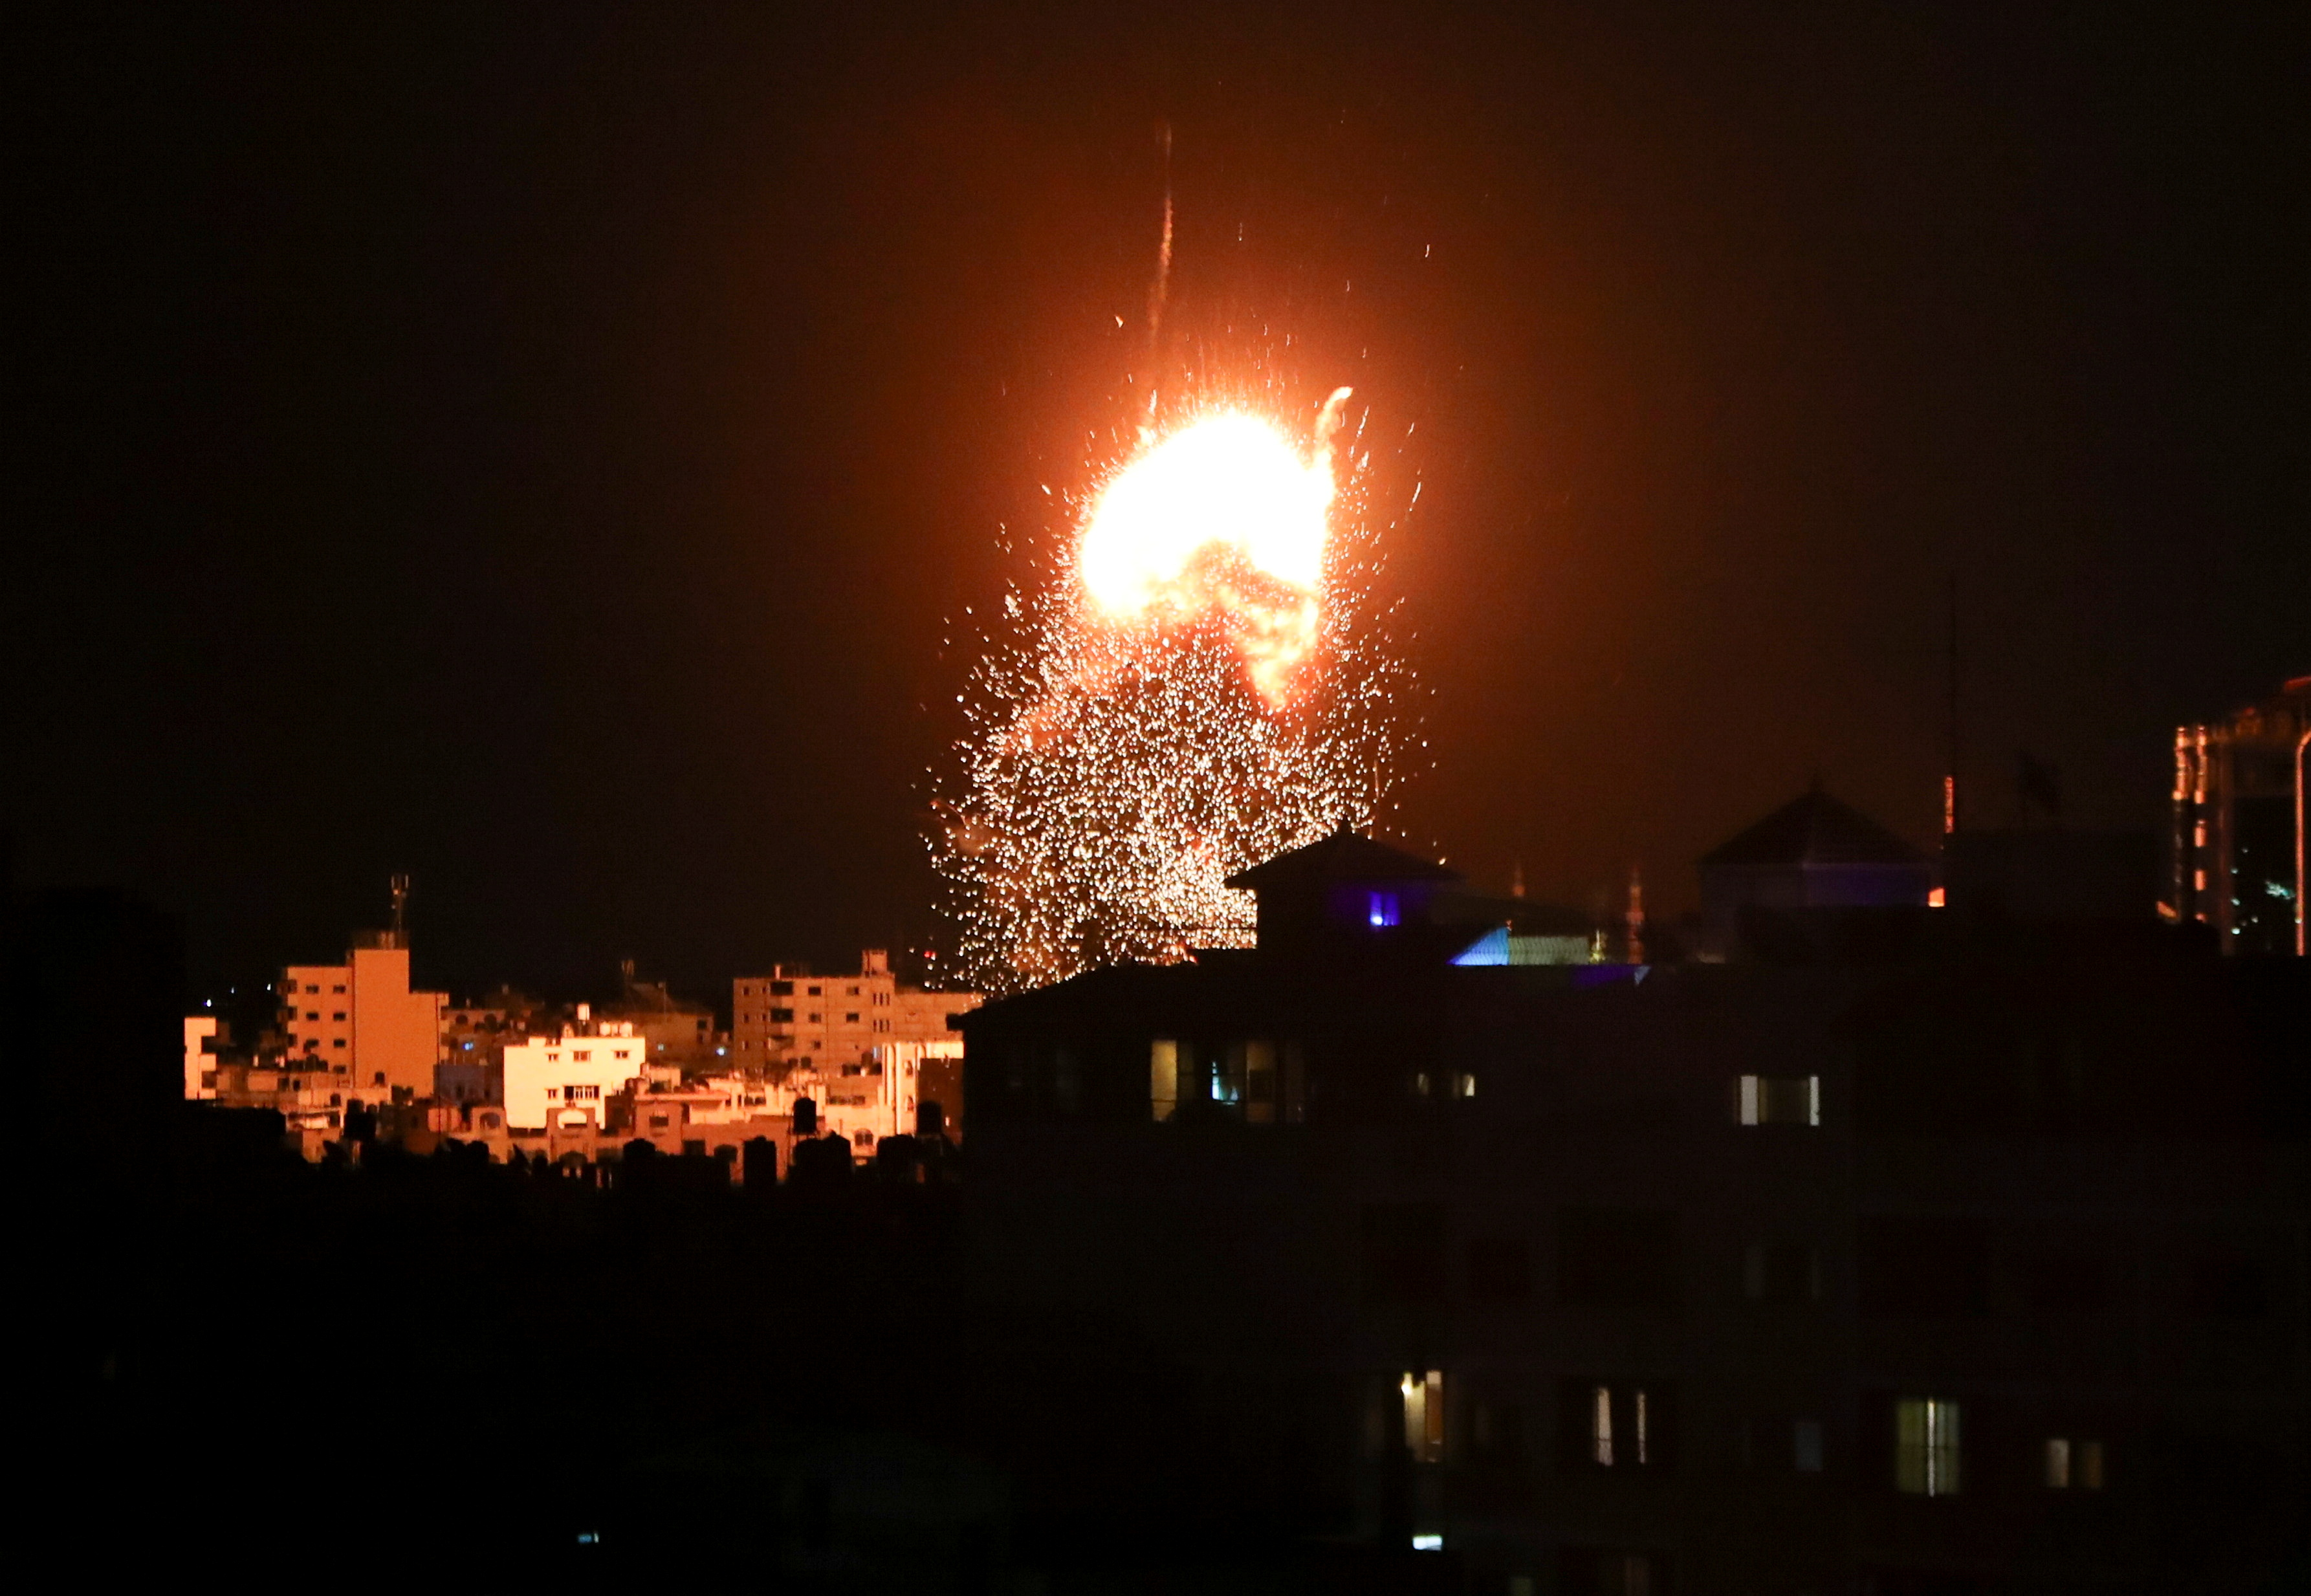 Smoke and flames rise above a building during Israeli air strikes, amid a flare-up of Israeli-Palestinian fighting, in Gaza City May 17, 2021. REUTERS/Mohammed Salem